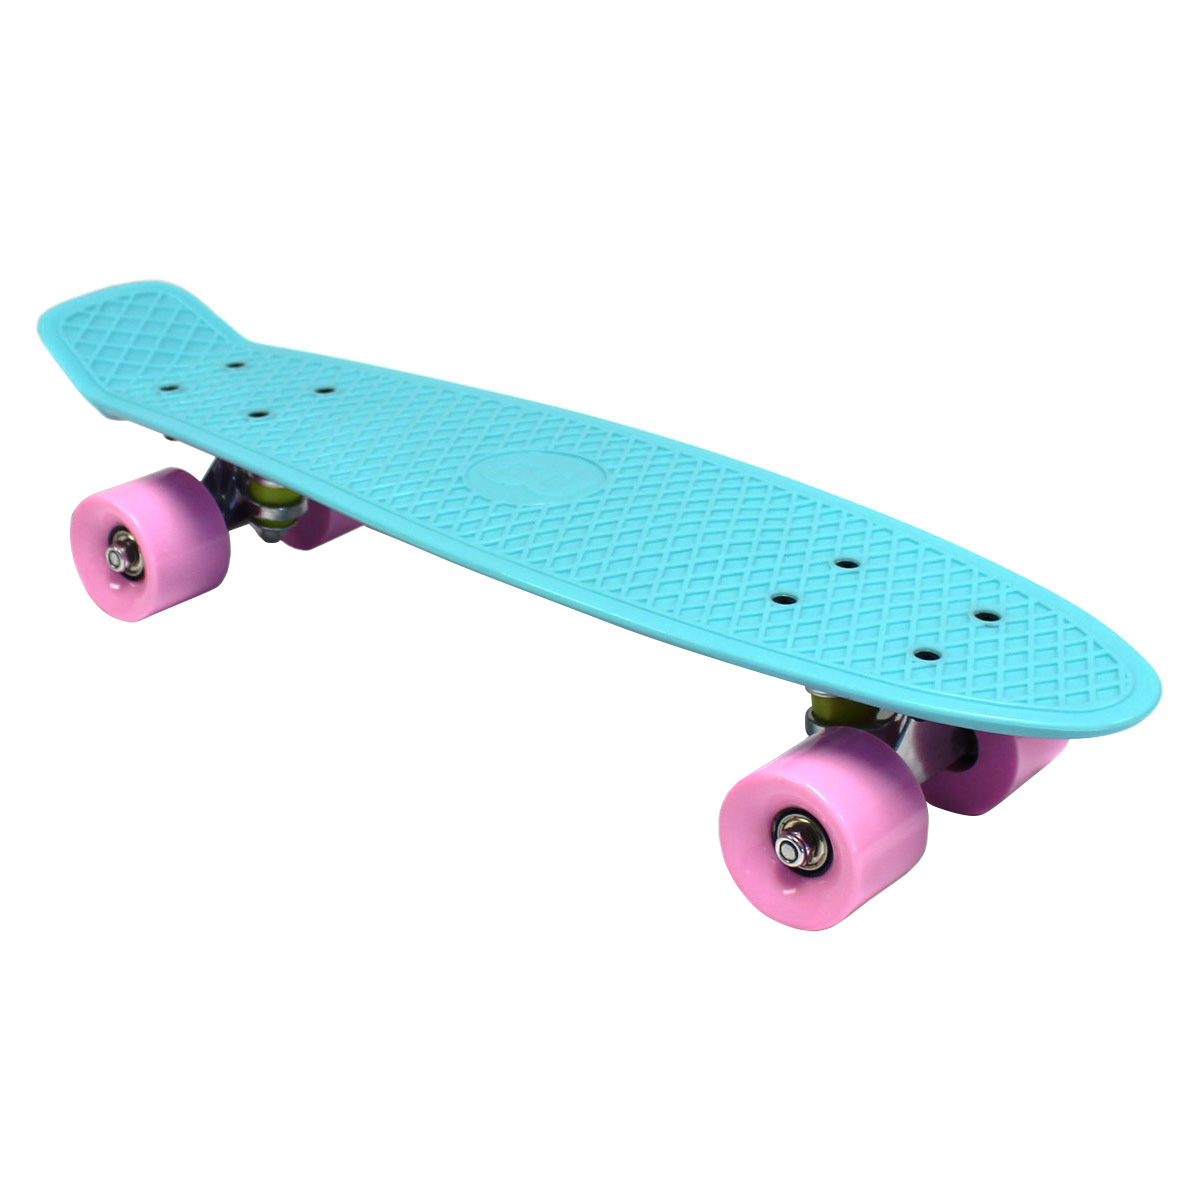 Skateboard Skateboard Bentley 22 Quot Kids Retro Cruiser Mini Plastic Skateboards